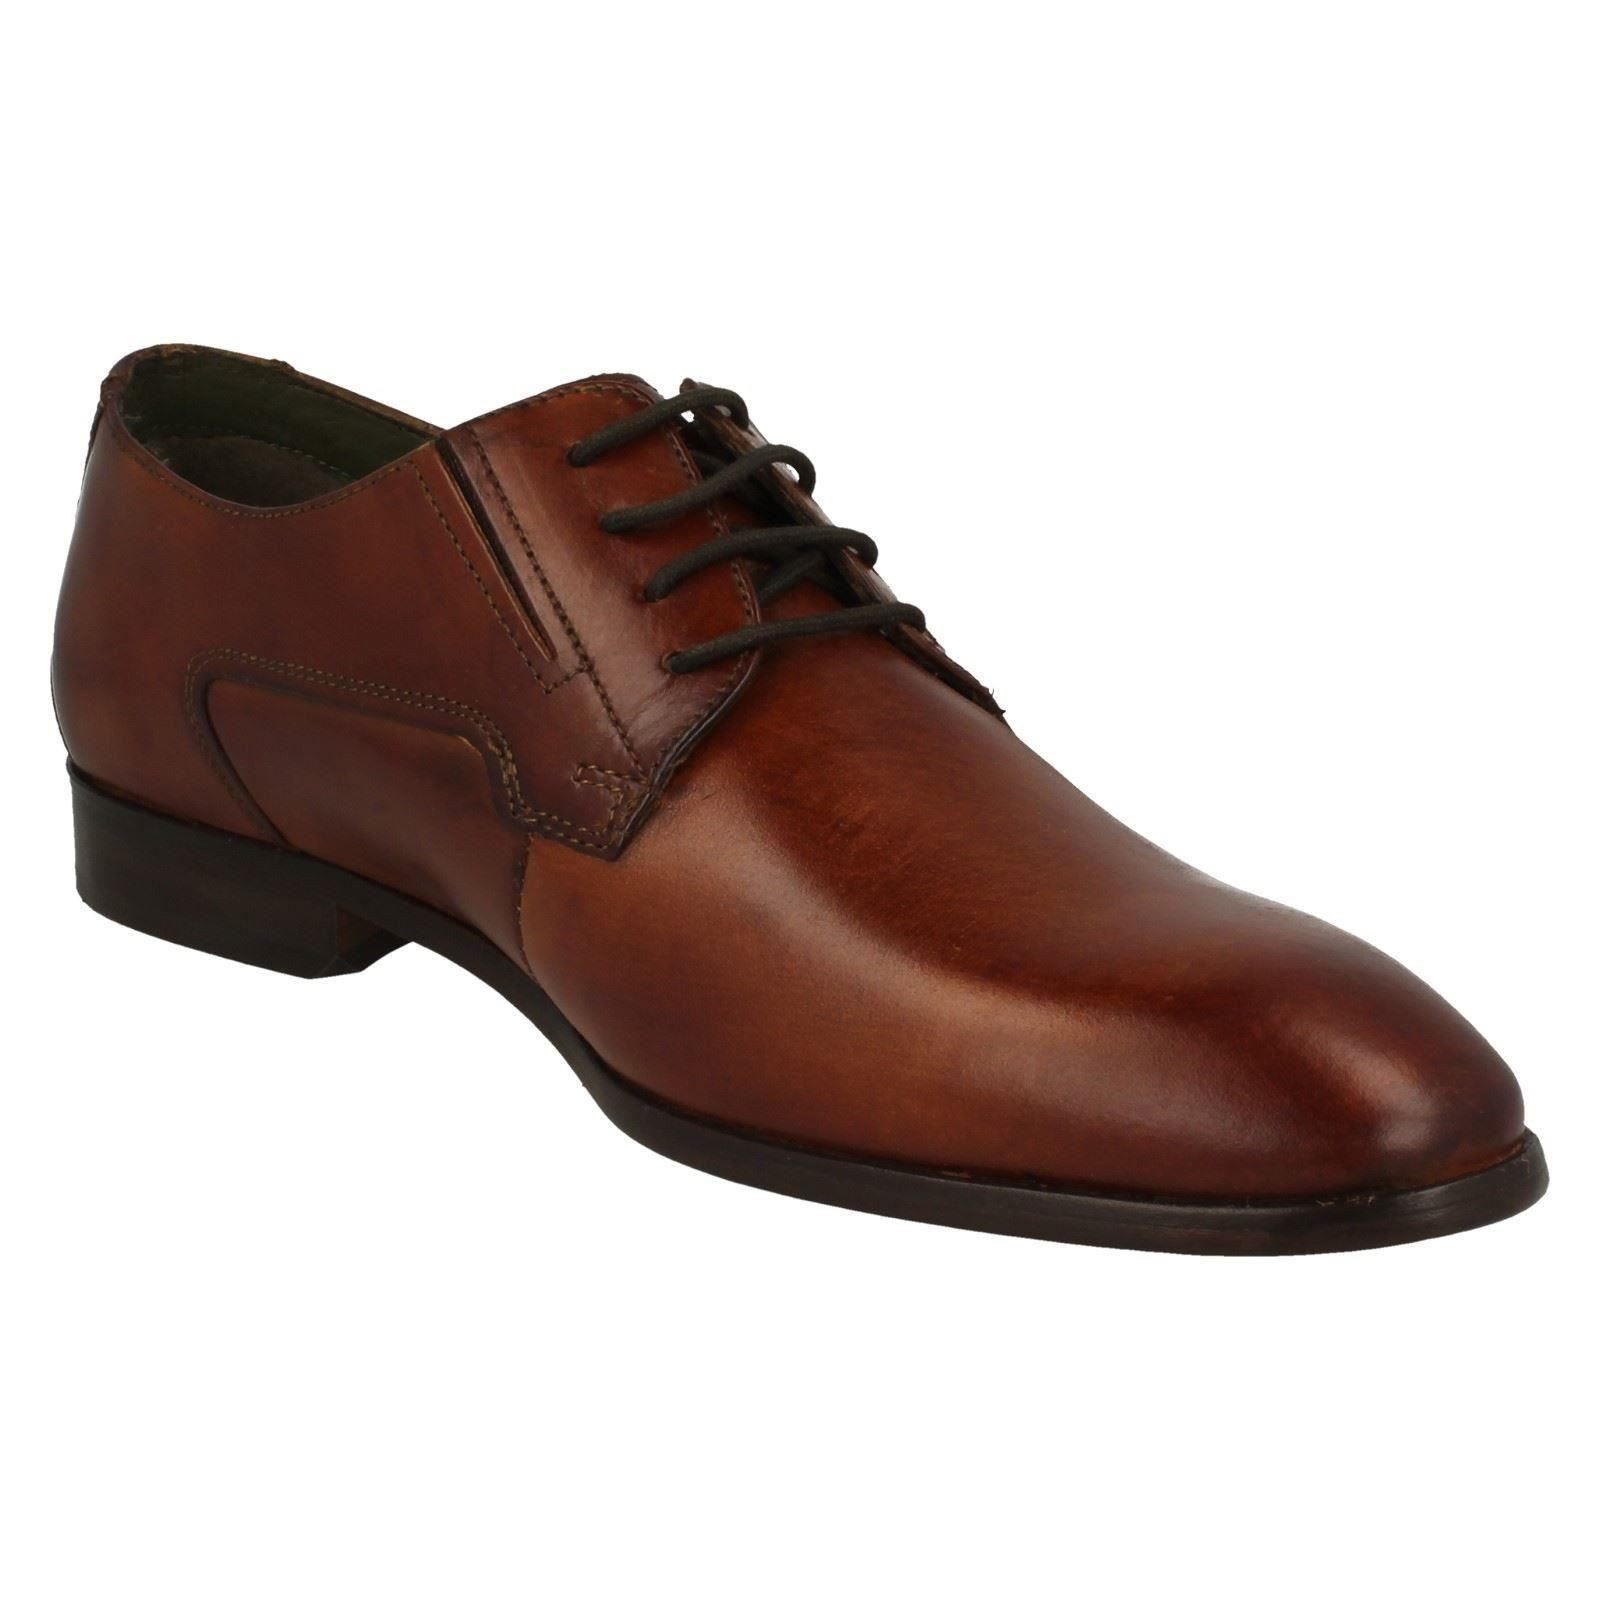 Bugatti Mens Formal Lace Up Shoes 311-41901-1100-6300